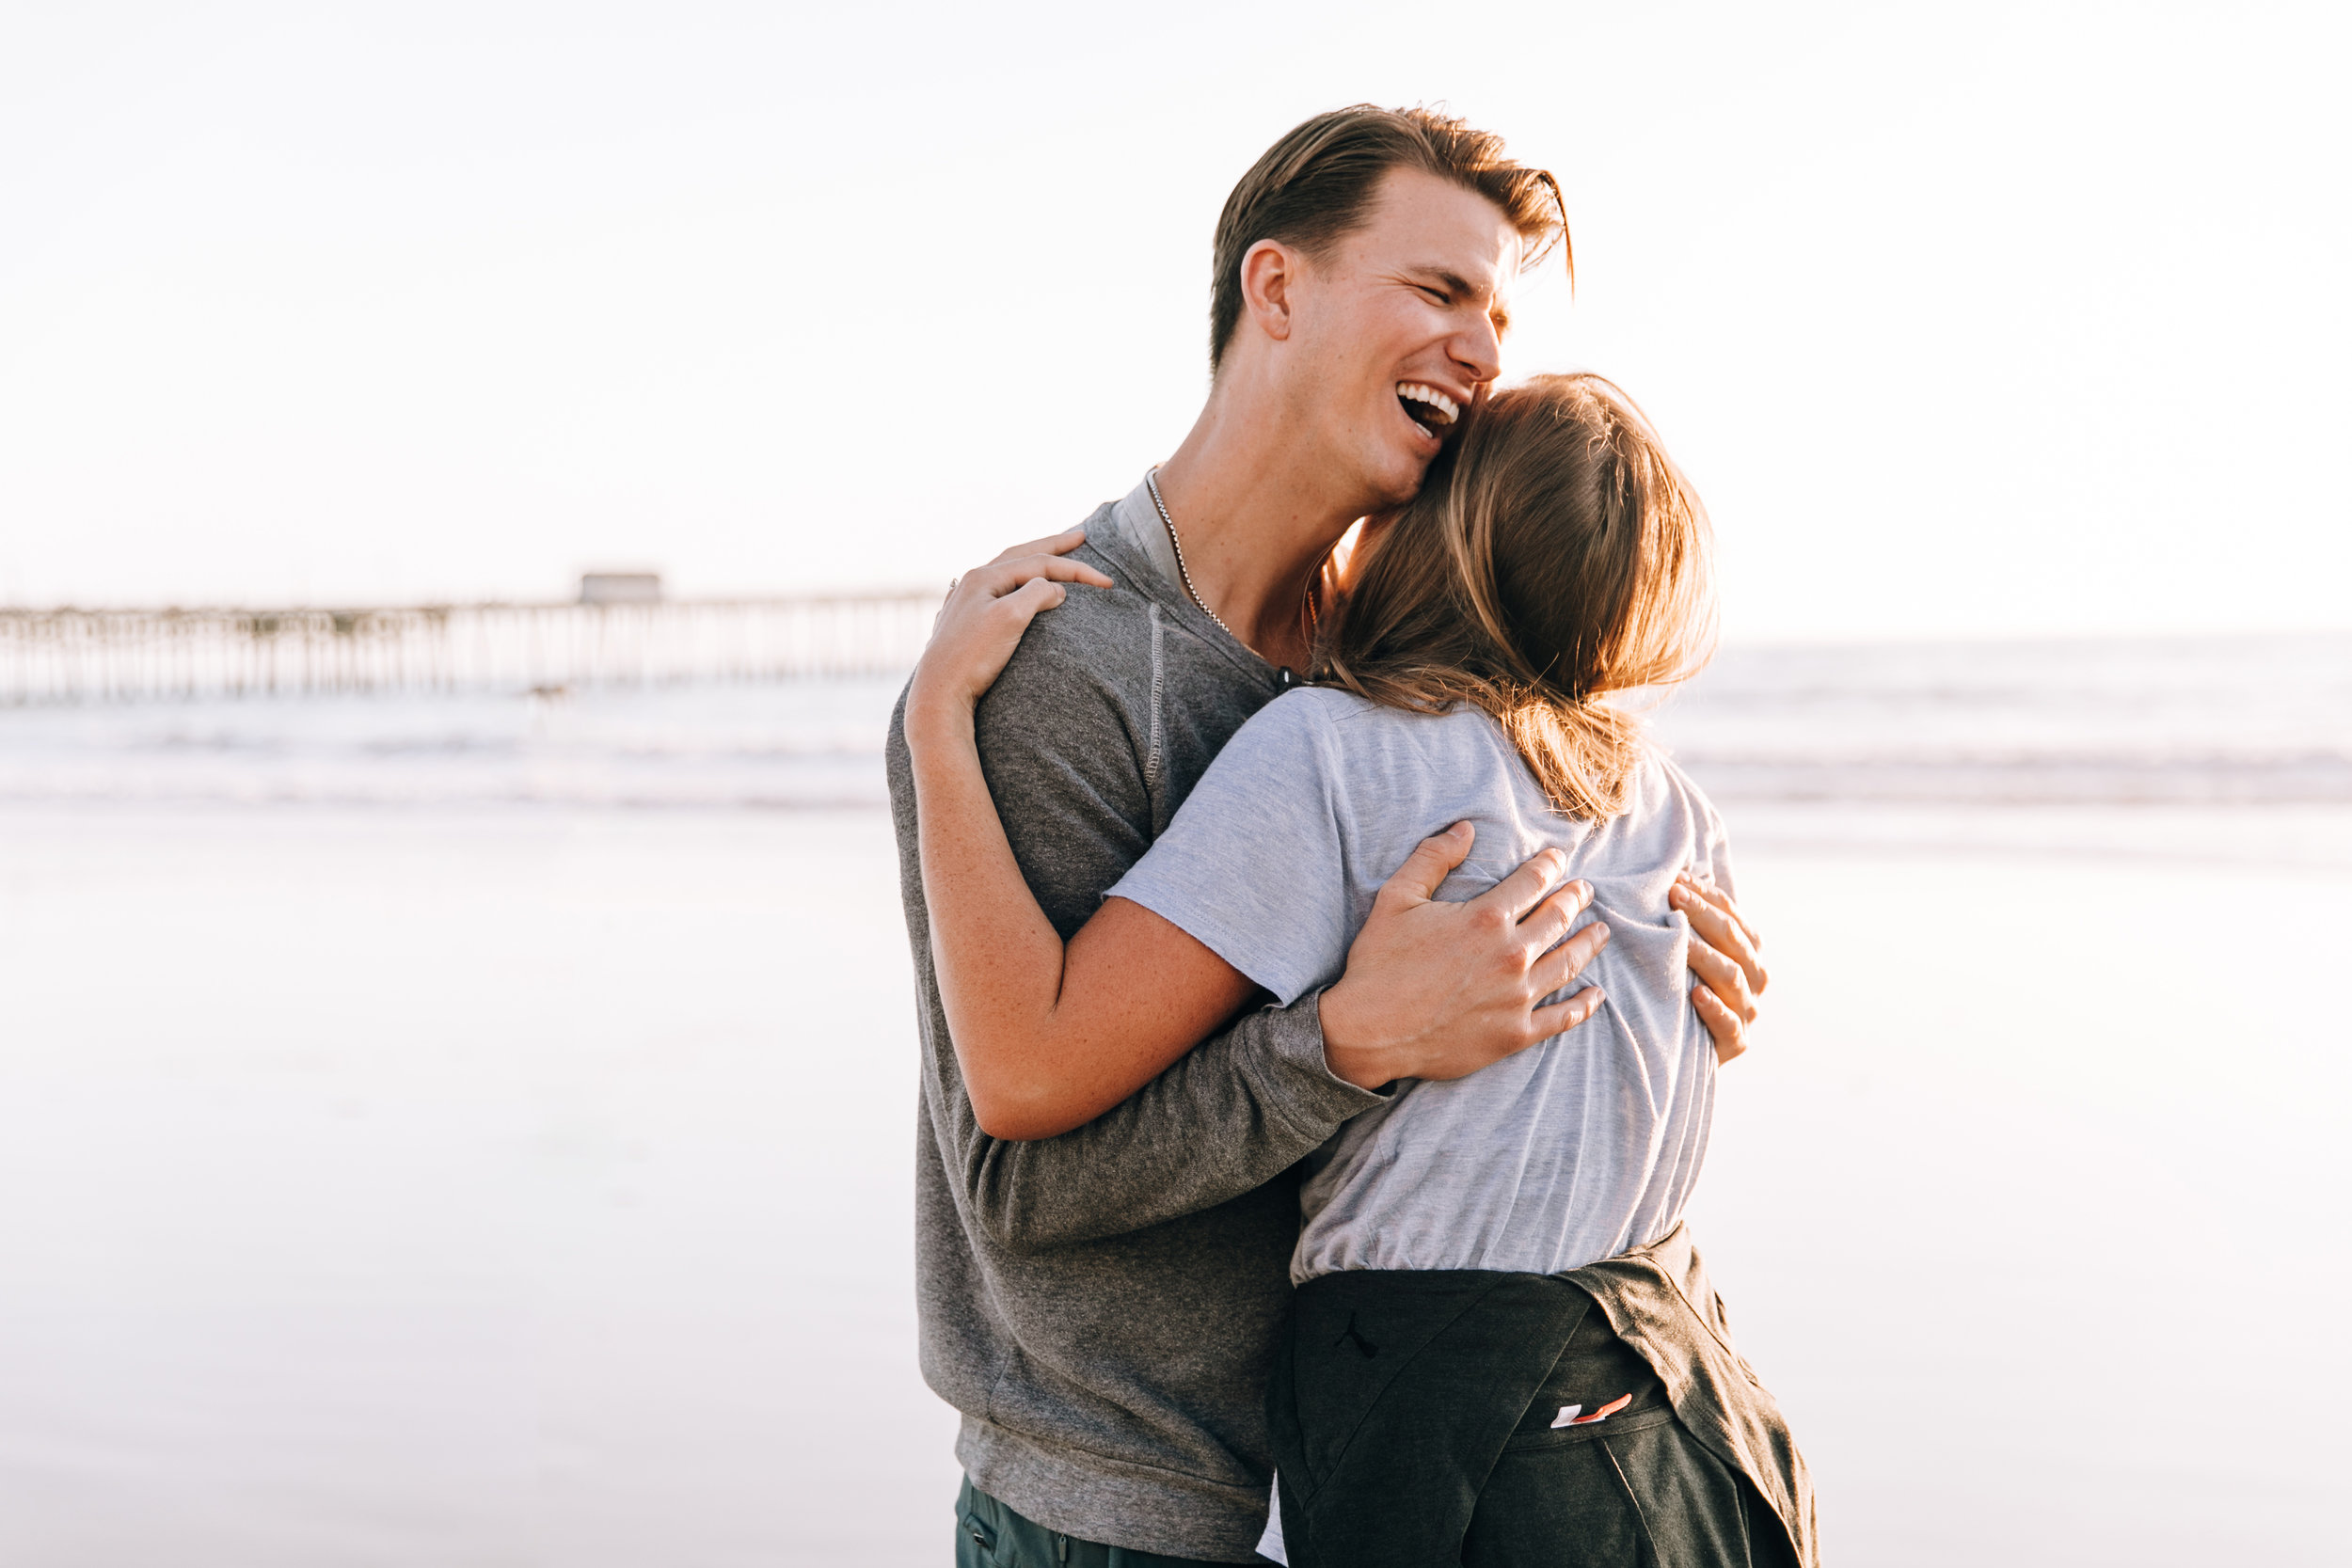 OC engagement photographer, Southern California engagement photographer, Orange County engagement photographer, SoCal engagement photographer, San Clemente engagement photographer